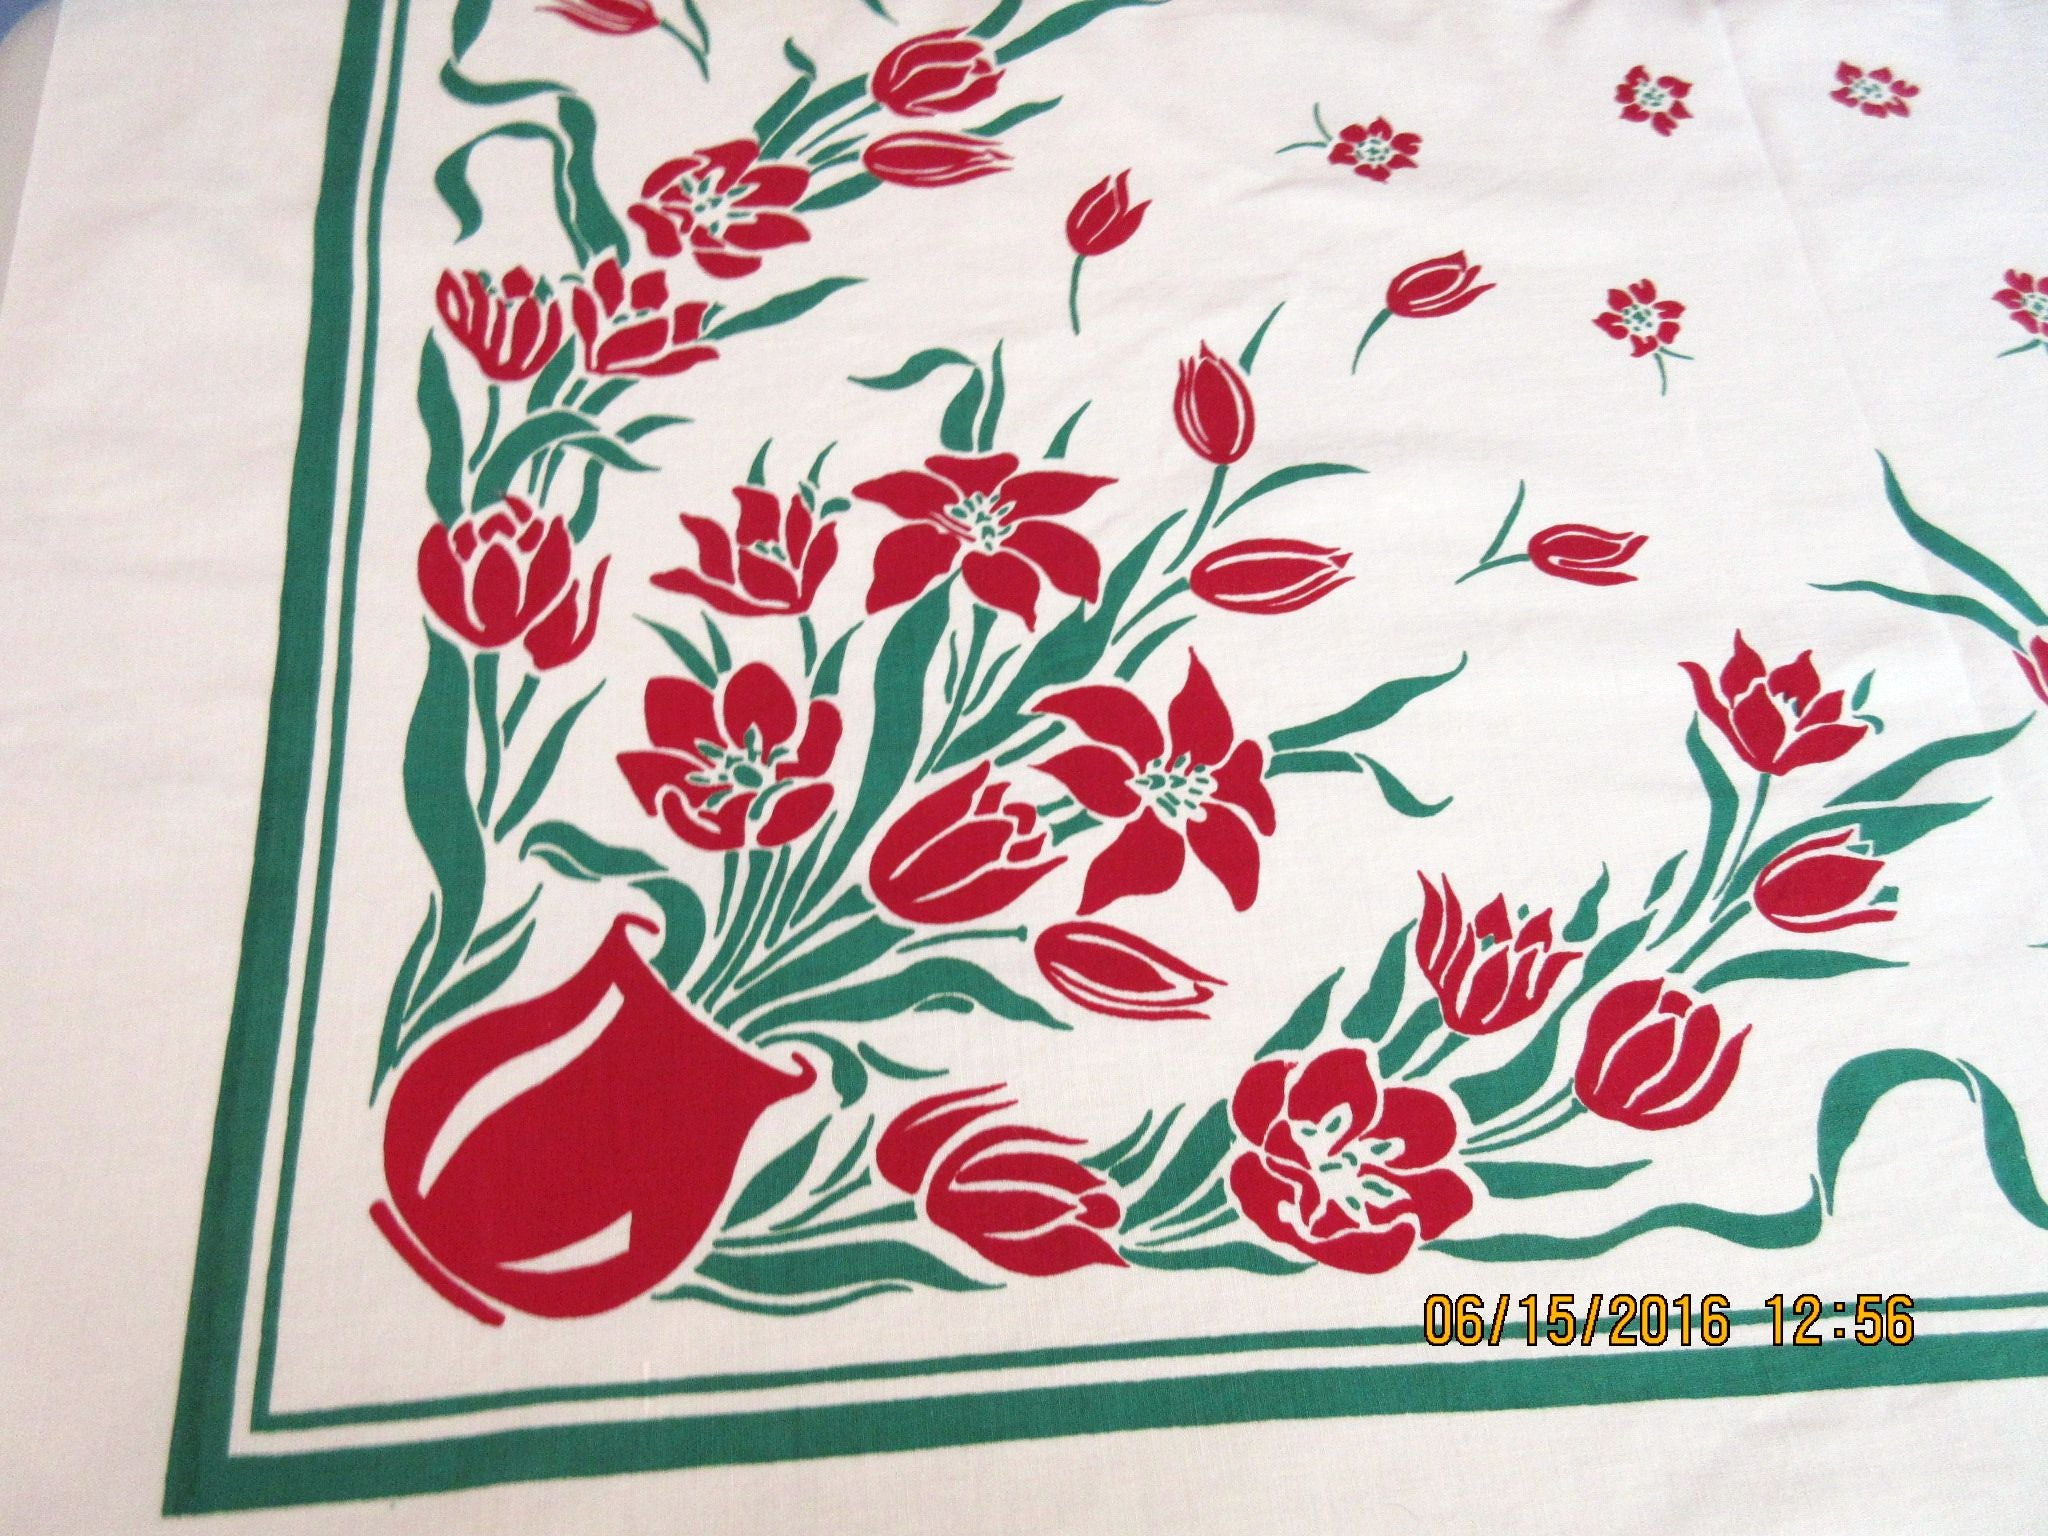 Glorious Red Green Lilies Tulips Vases Floral Vintage Printed Tablecloth (53 X 49)